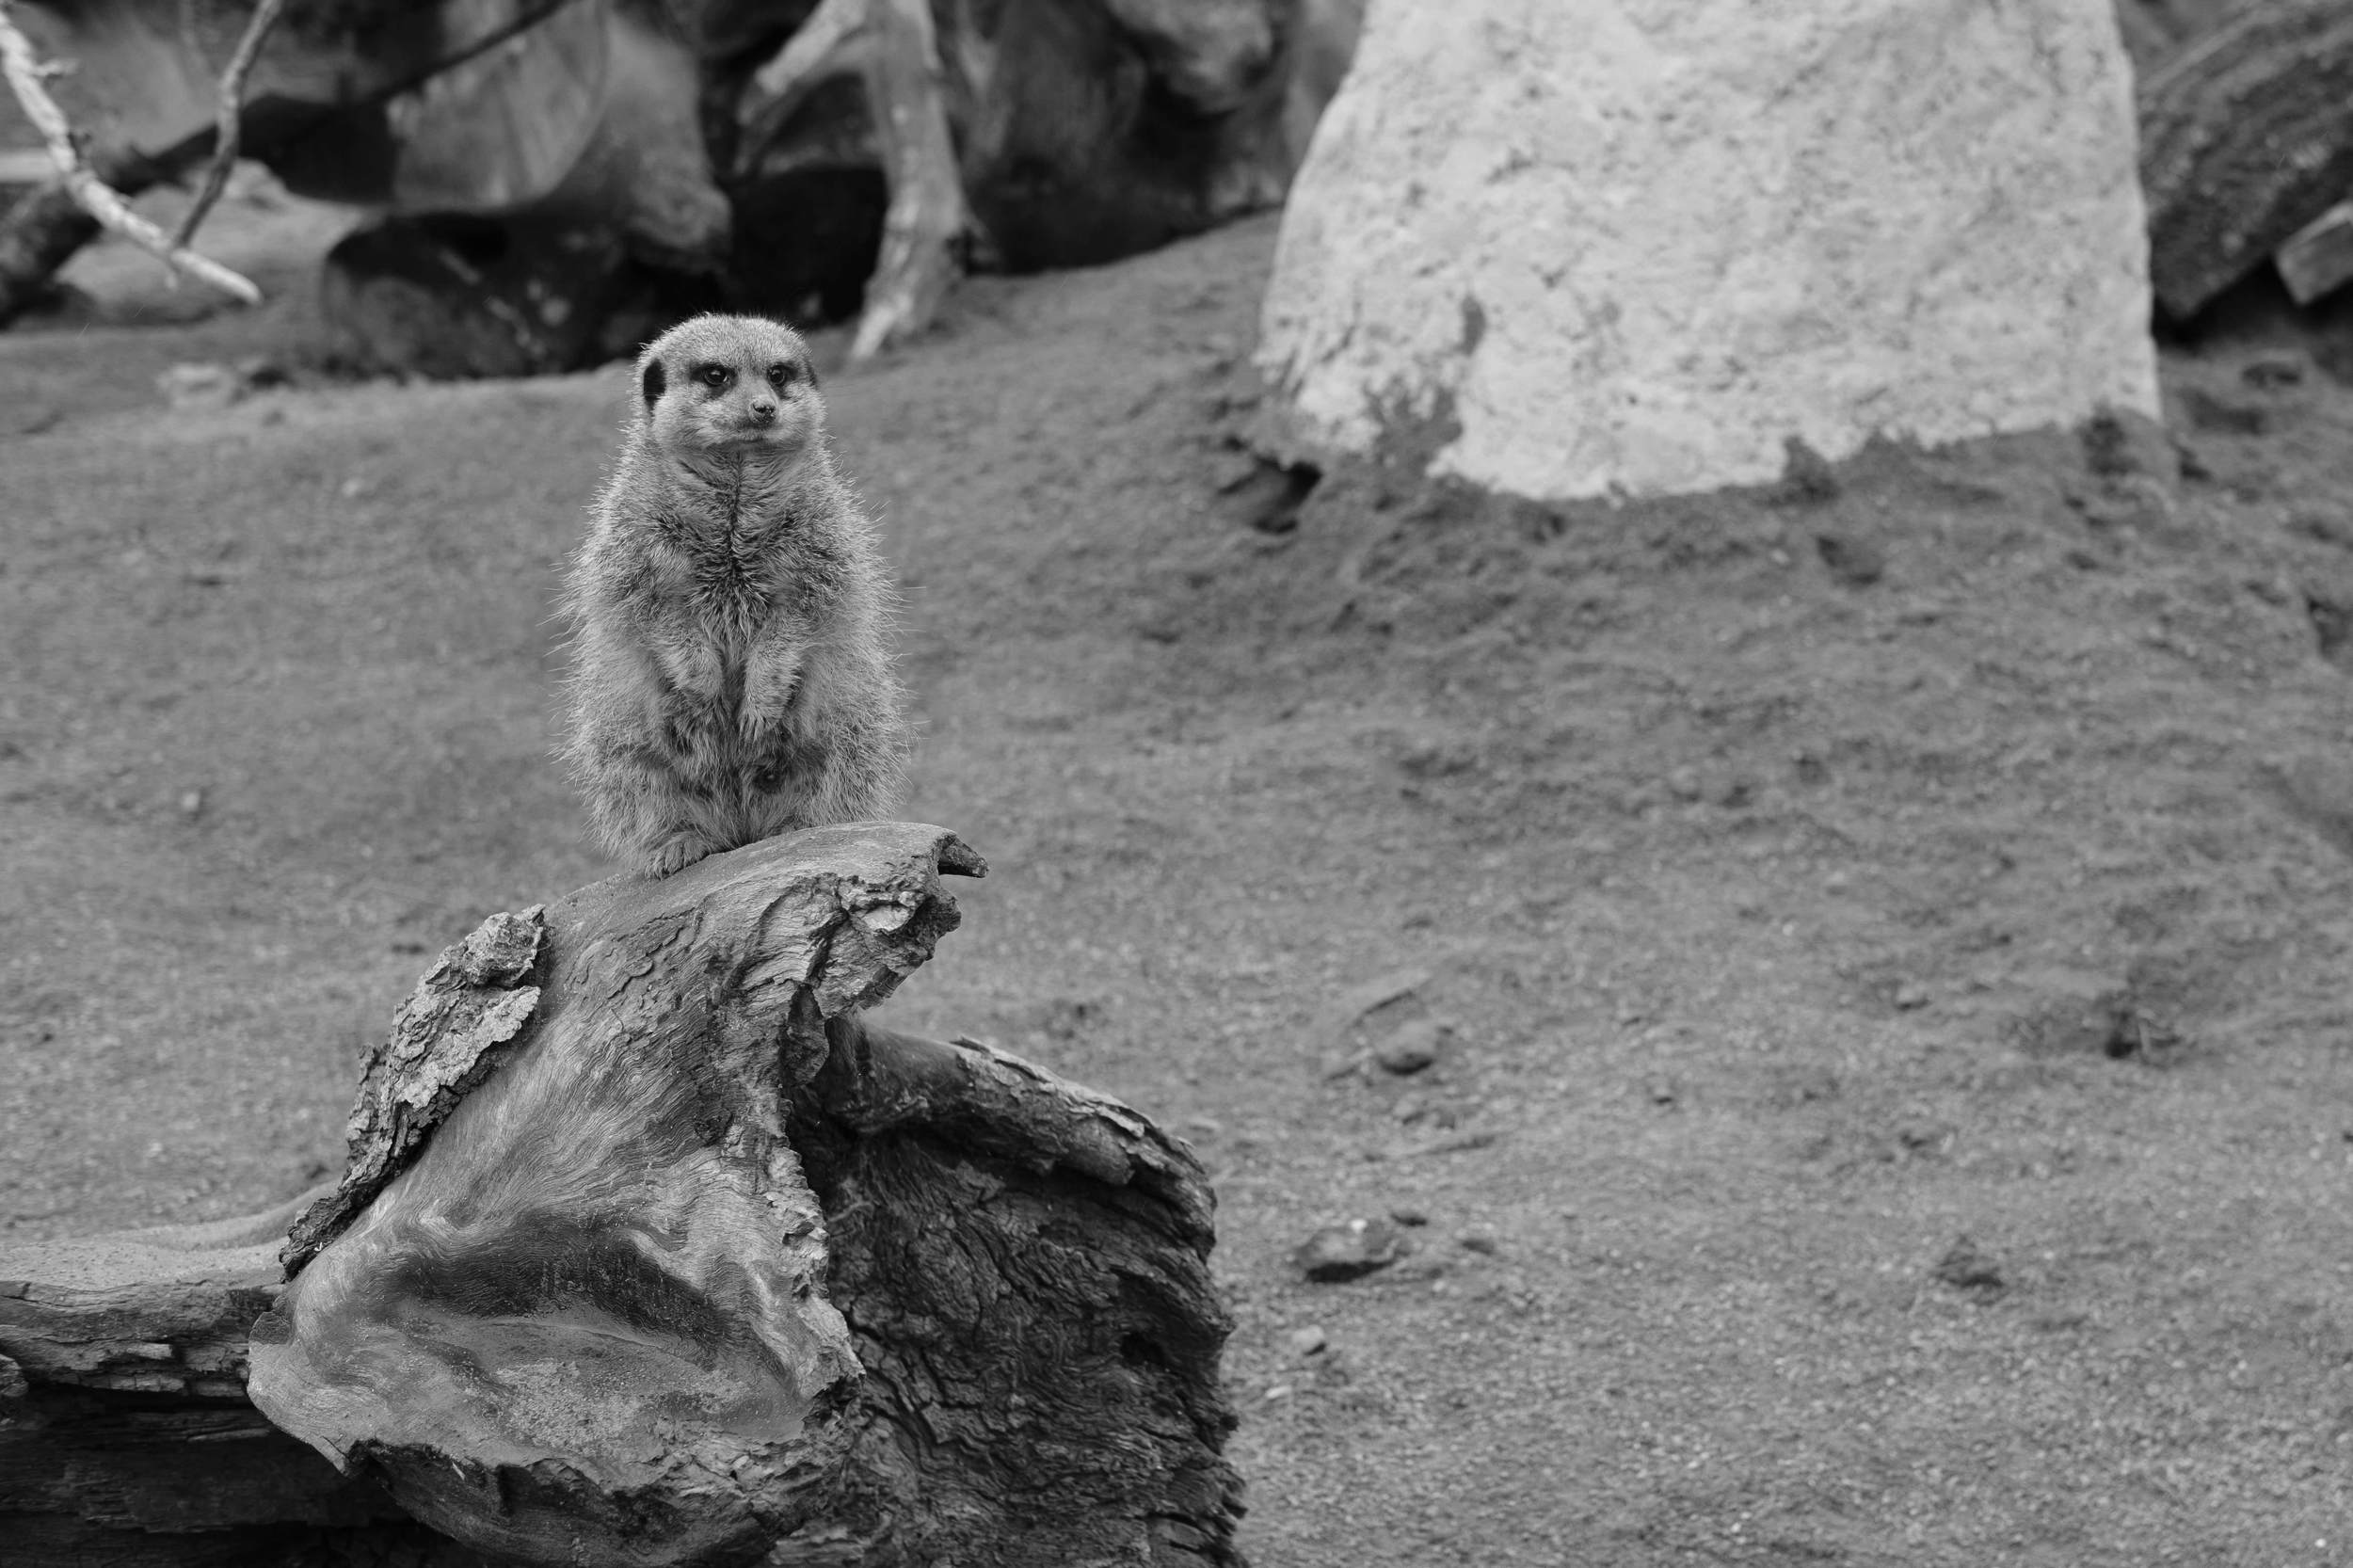 Black & White Meerkat at Eshottheugh Animal Park, Northumberland